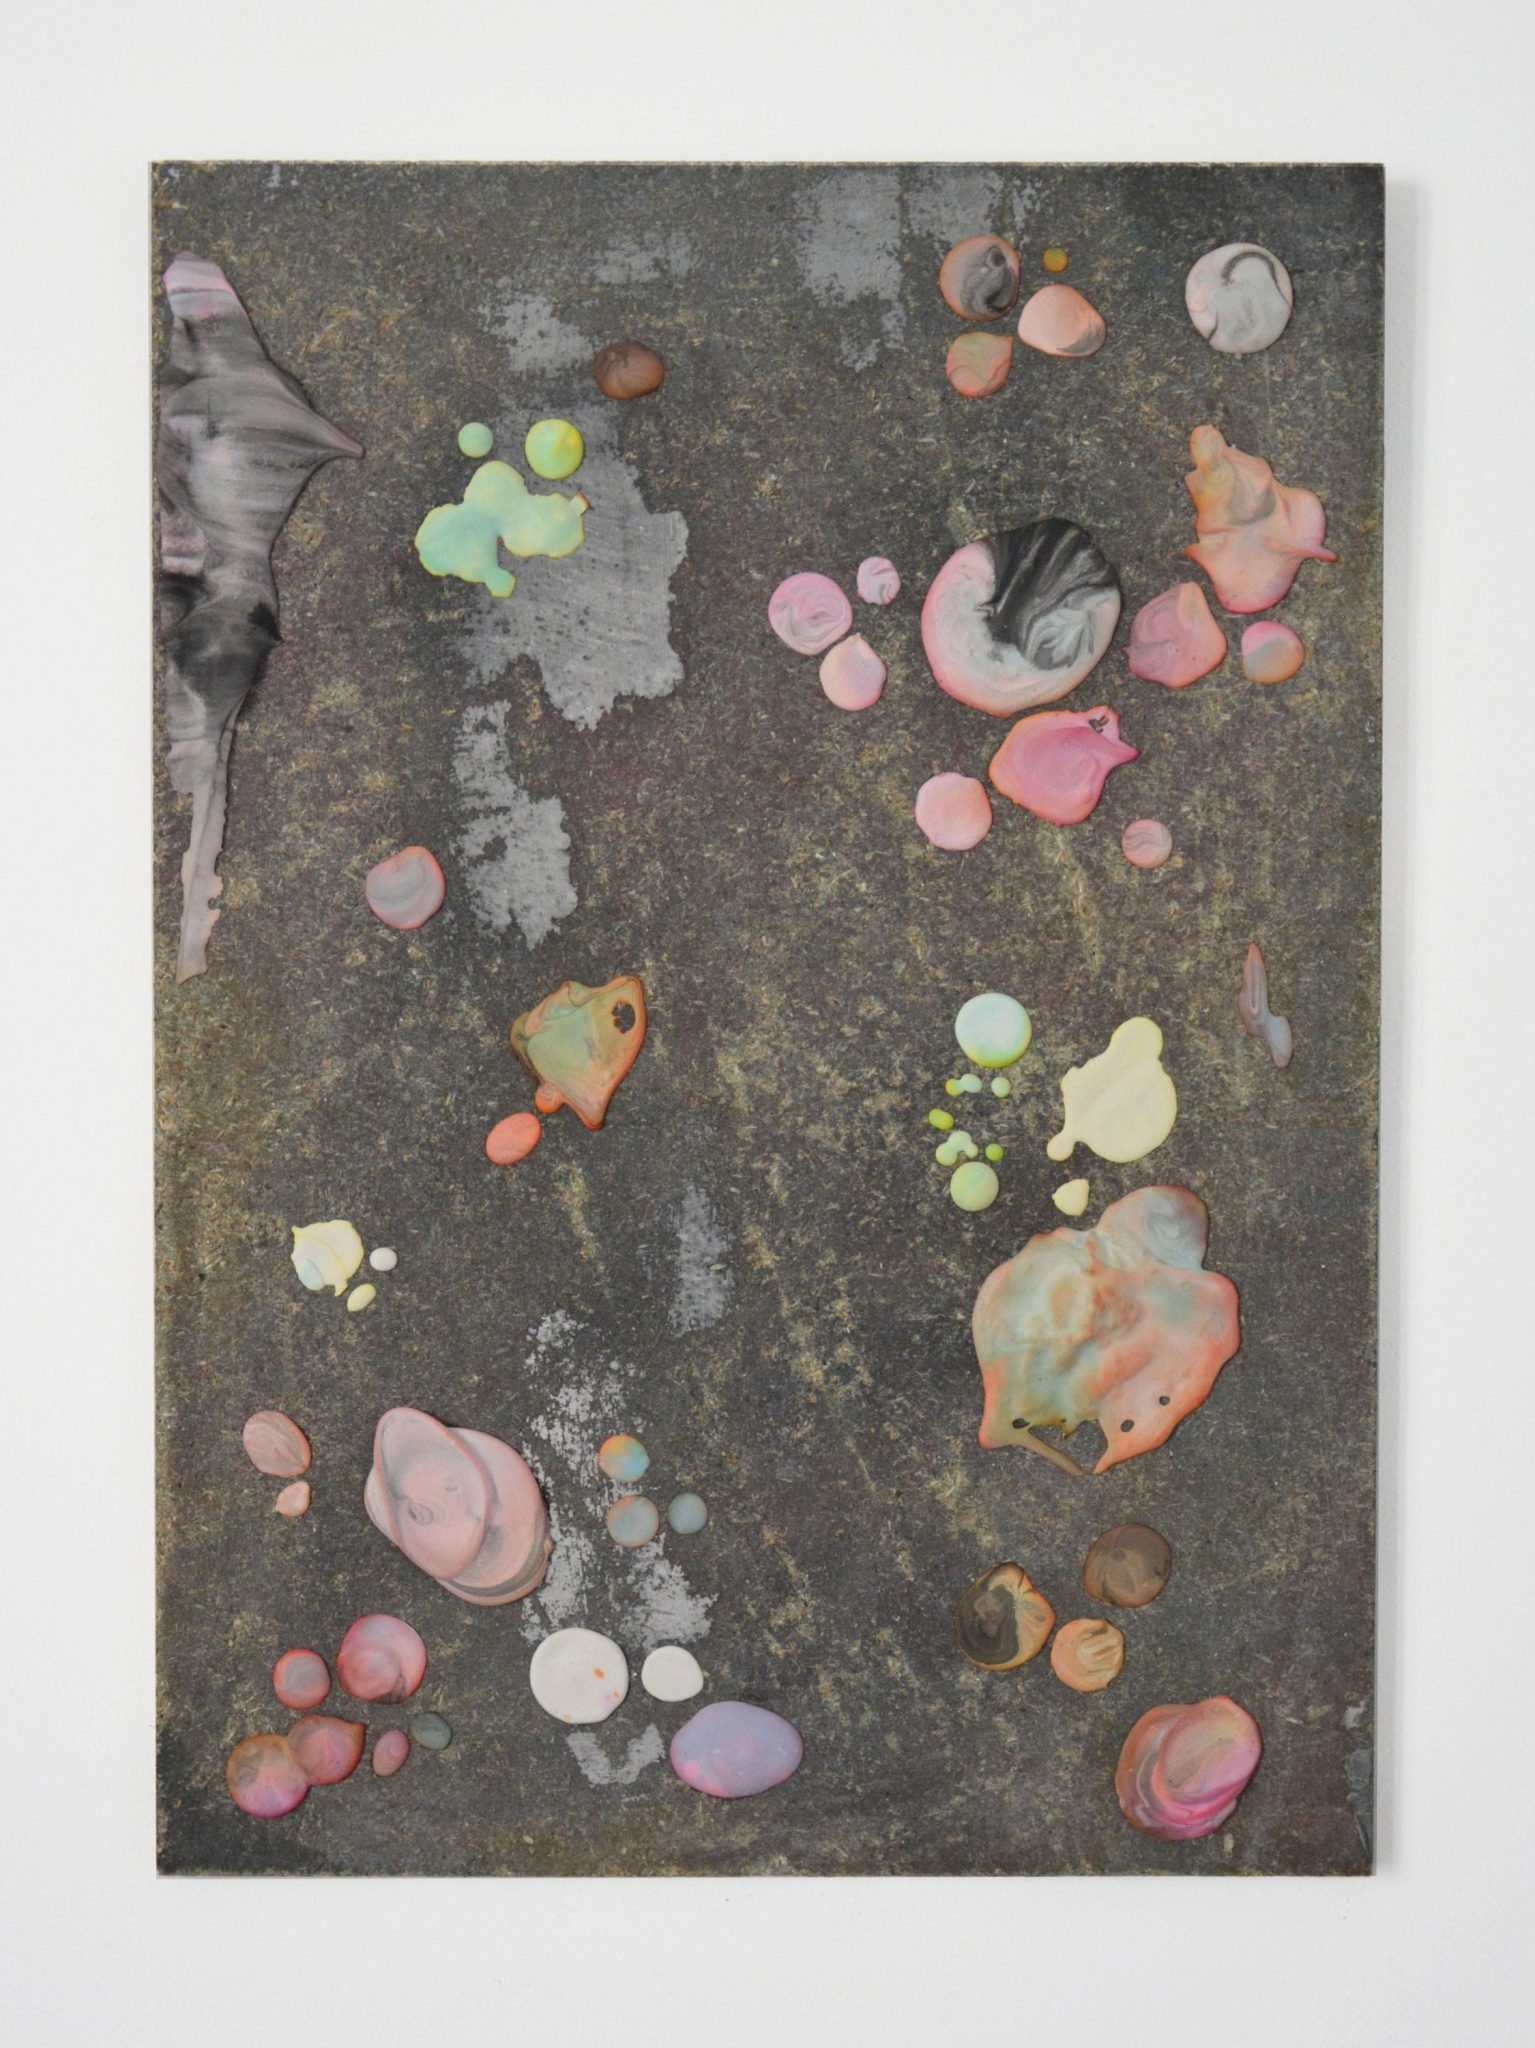 Sliders (21), 2015 Dried drips of colored plaster, glue, wood 42 x 30 cm